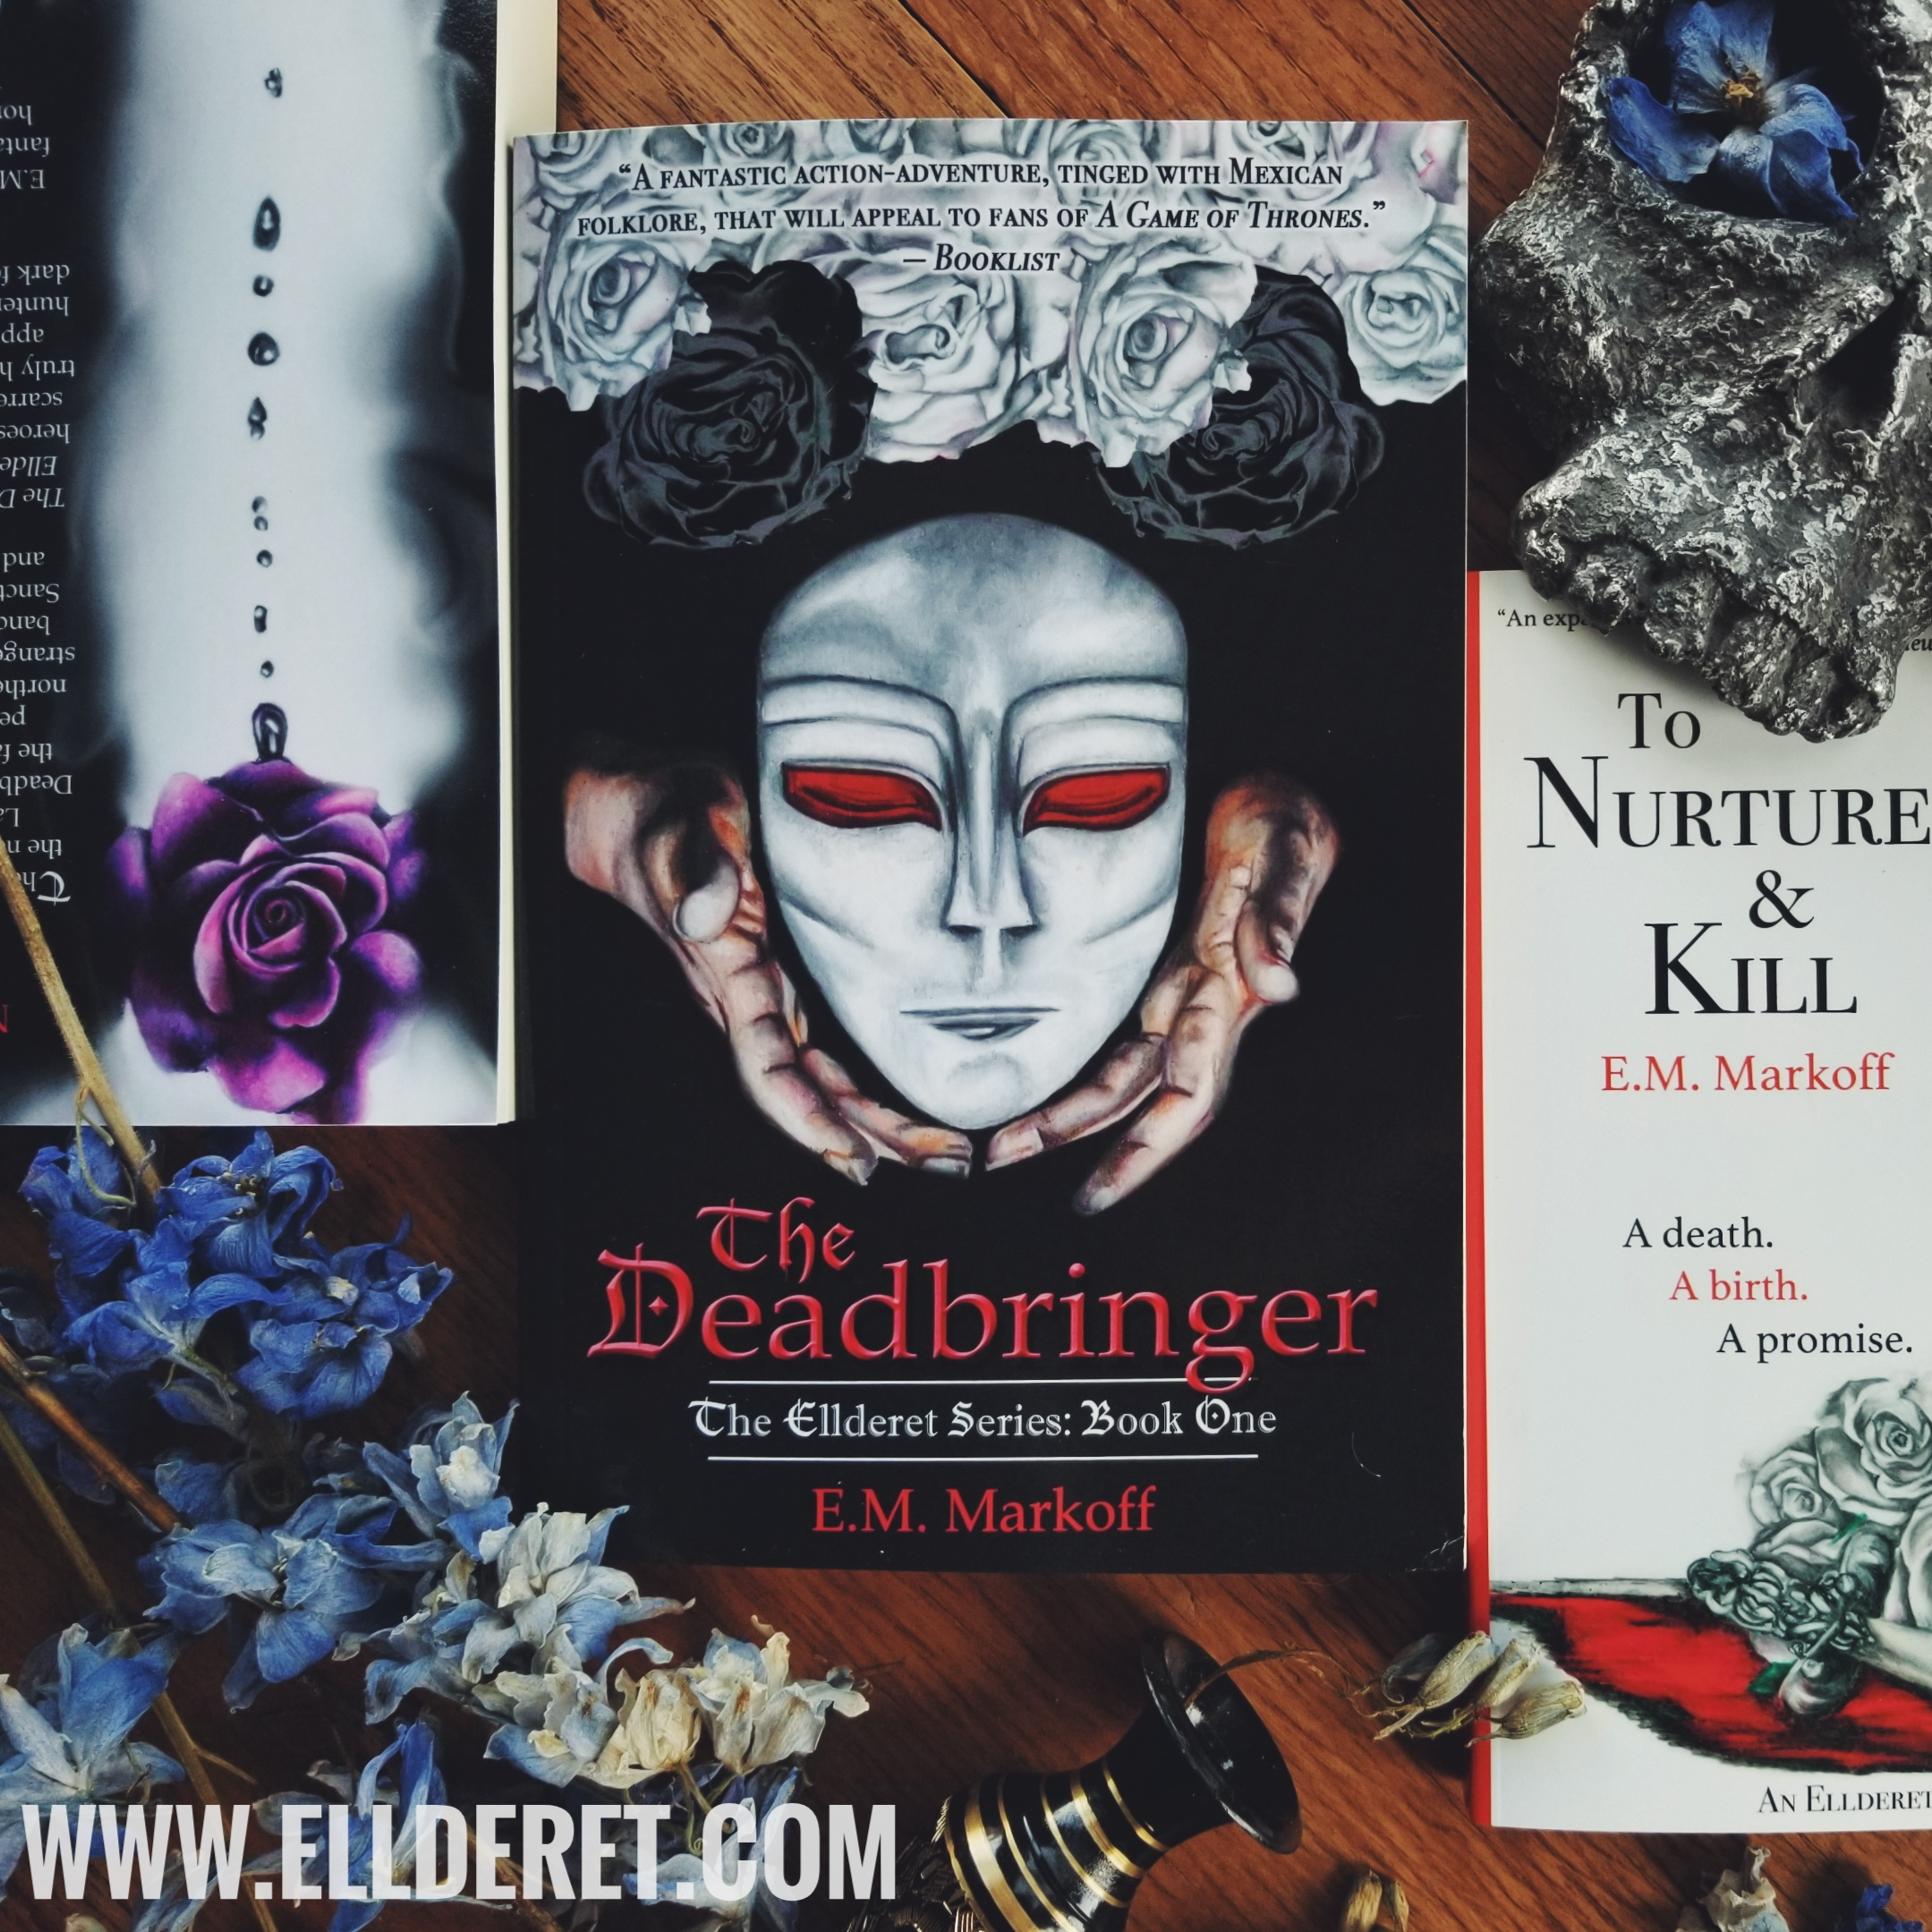 The Ellderet Series (Book 1) - The Deadbringer